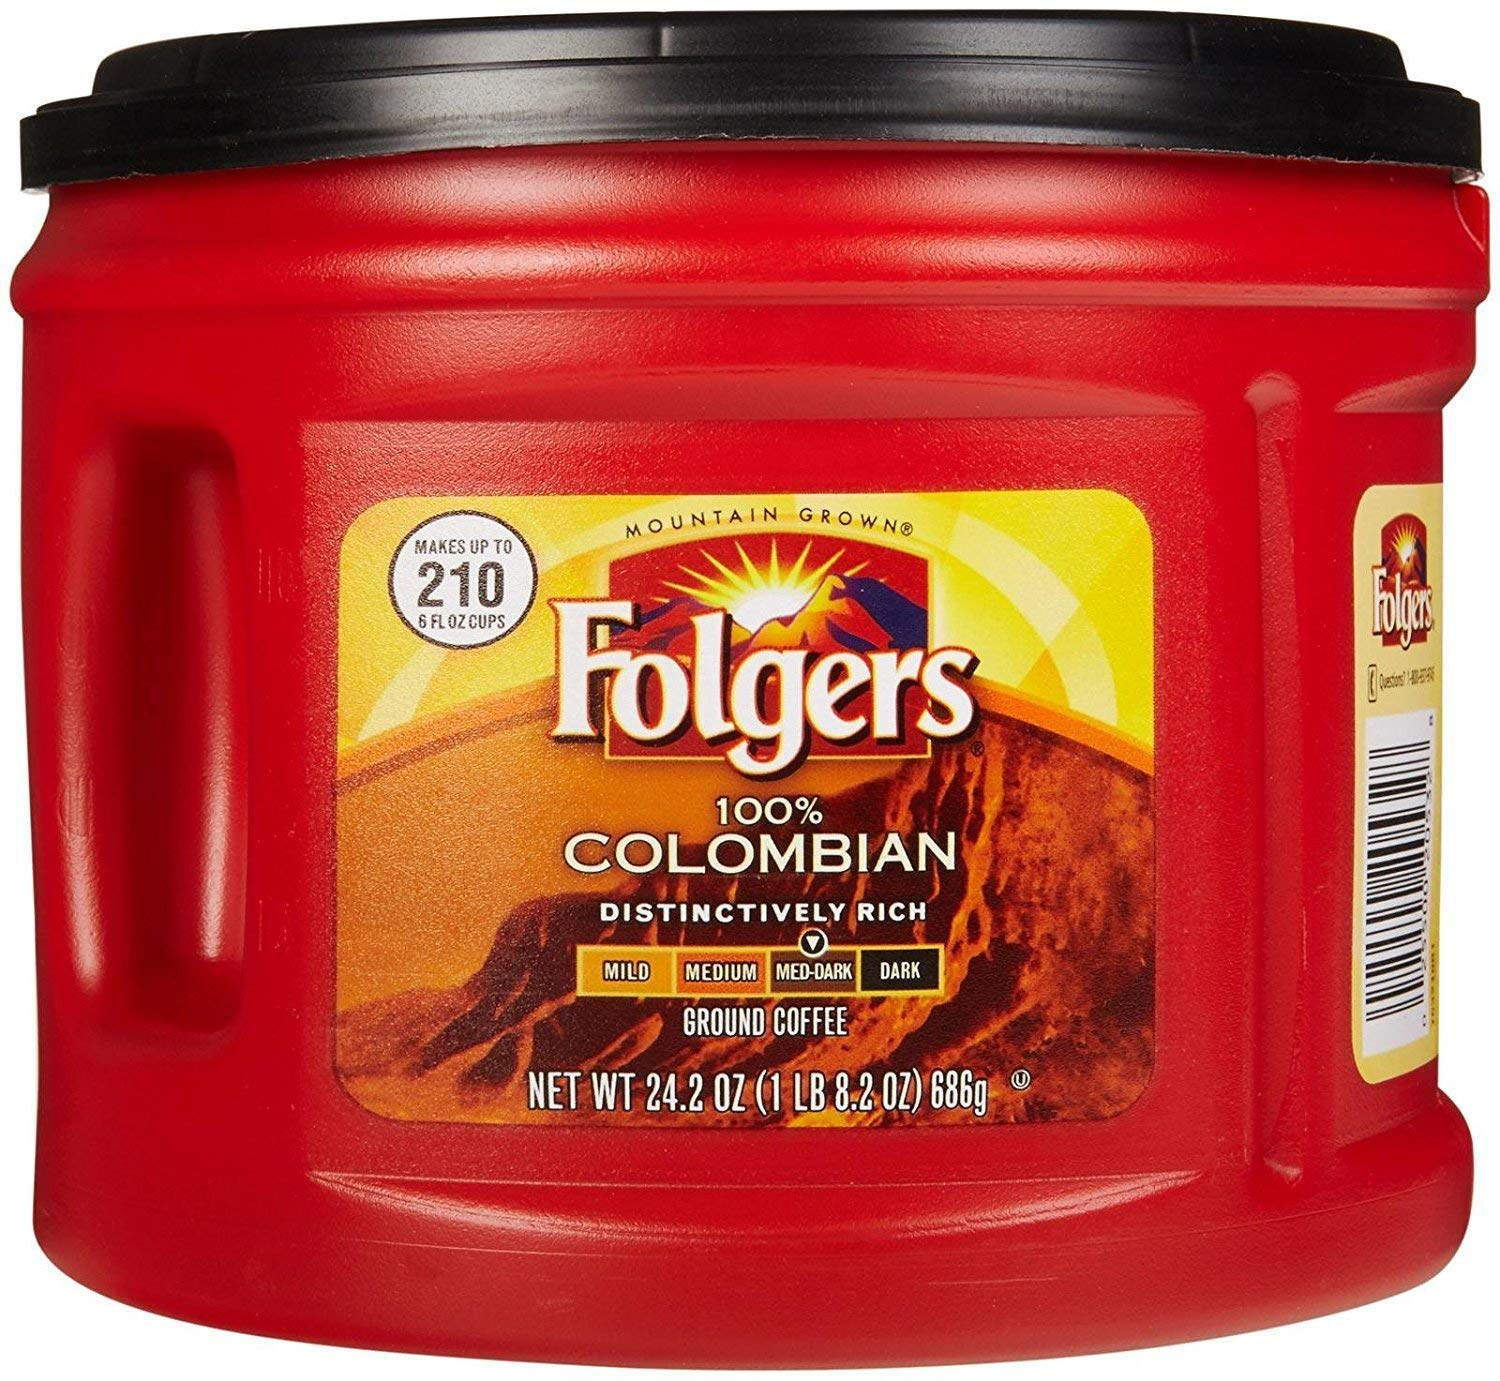 Folgers 100% Colombian Ground Coffee, Medium Dark Roast, 24.2 Ounce (Pack of 4)